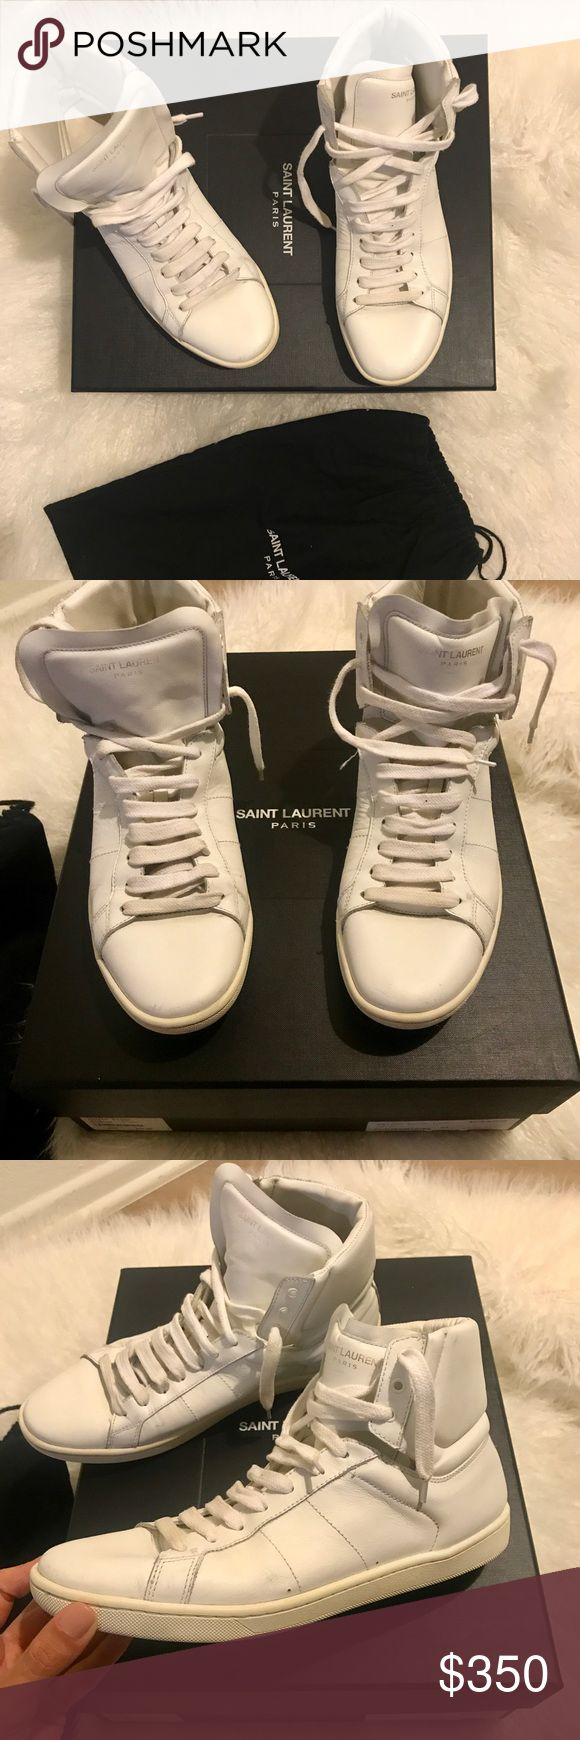 Authentic Saint Laurent sneakers | Good condition Unisex Beautiful Authentic Saint Laurent sneakers. Size 8.5 or 38/39. Super cute! Go with everything. Good condition :) They look exactly as they do in photos! Saint Laurent Shoes Sneakers